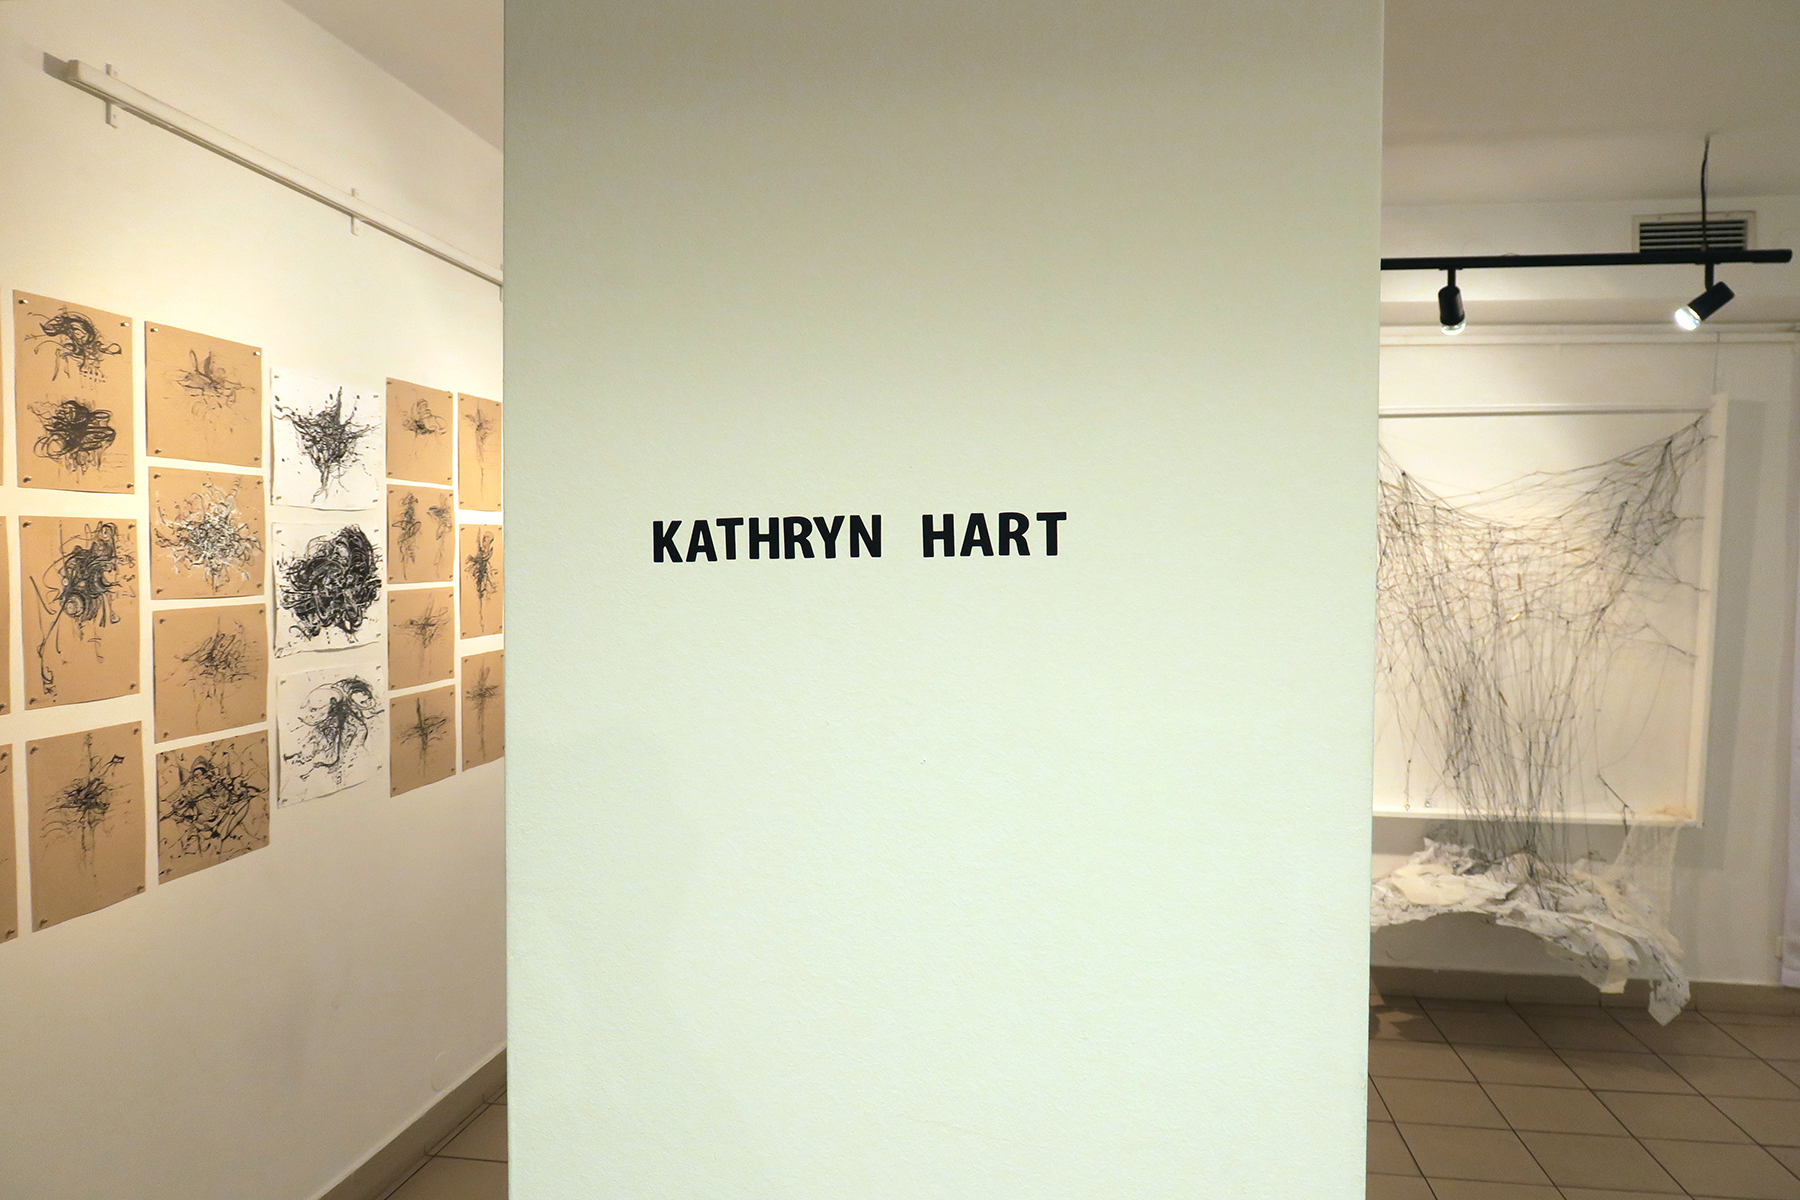 Kathryn Hart,  Daunting Transitions, Solo Show, Krakow 2018